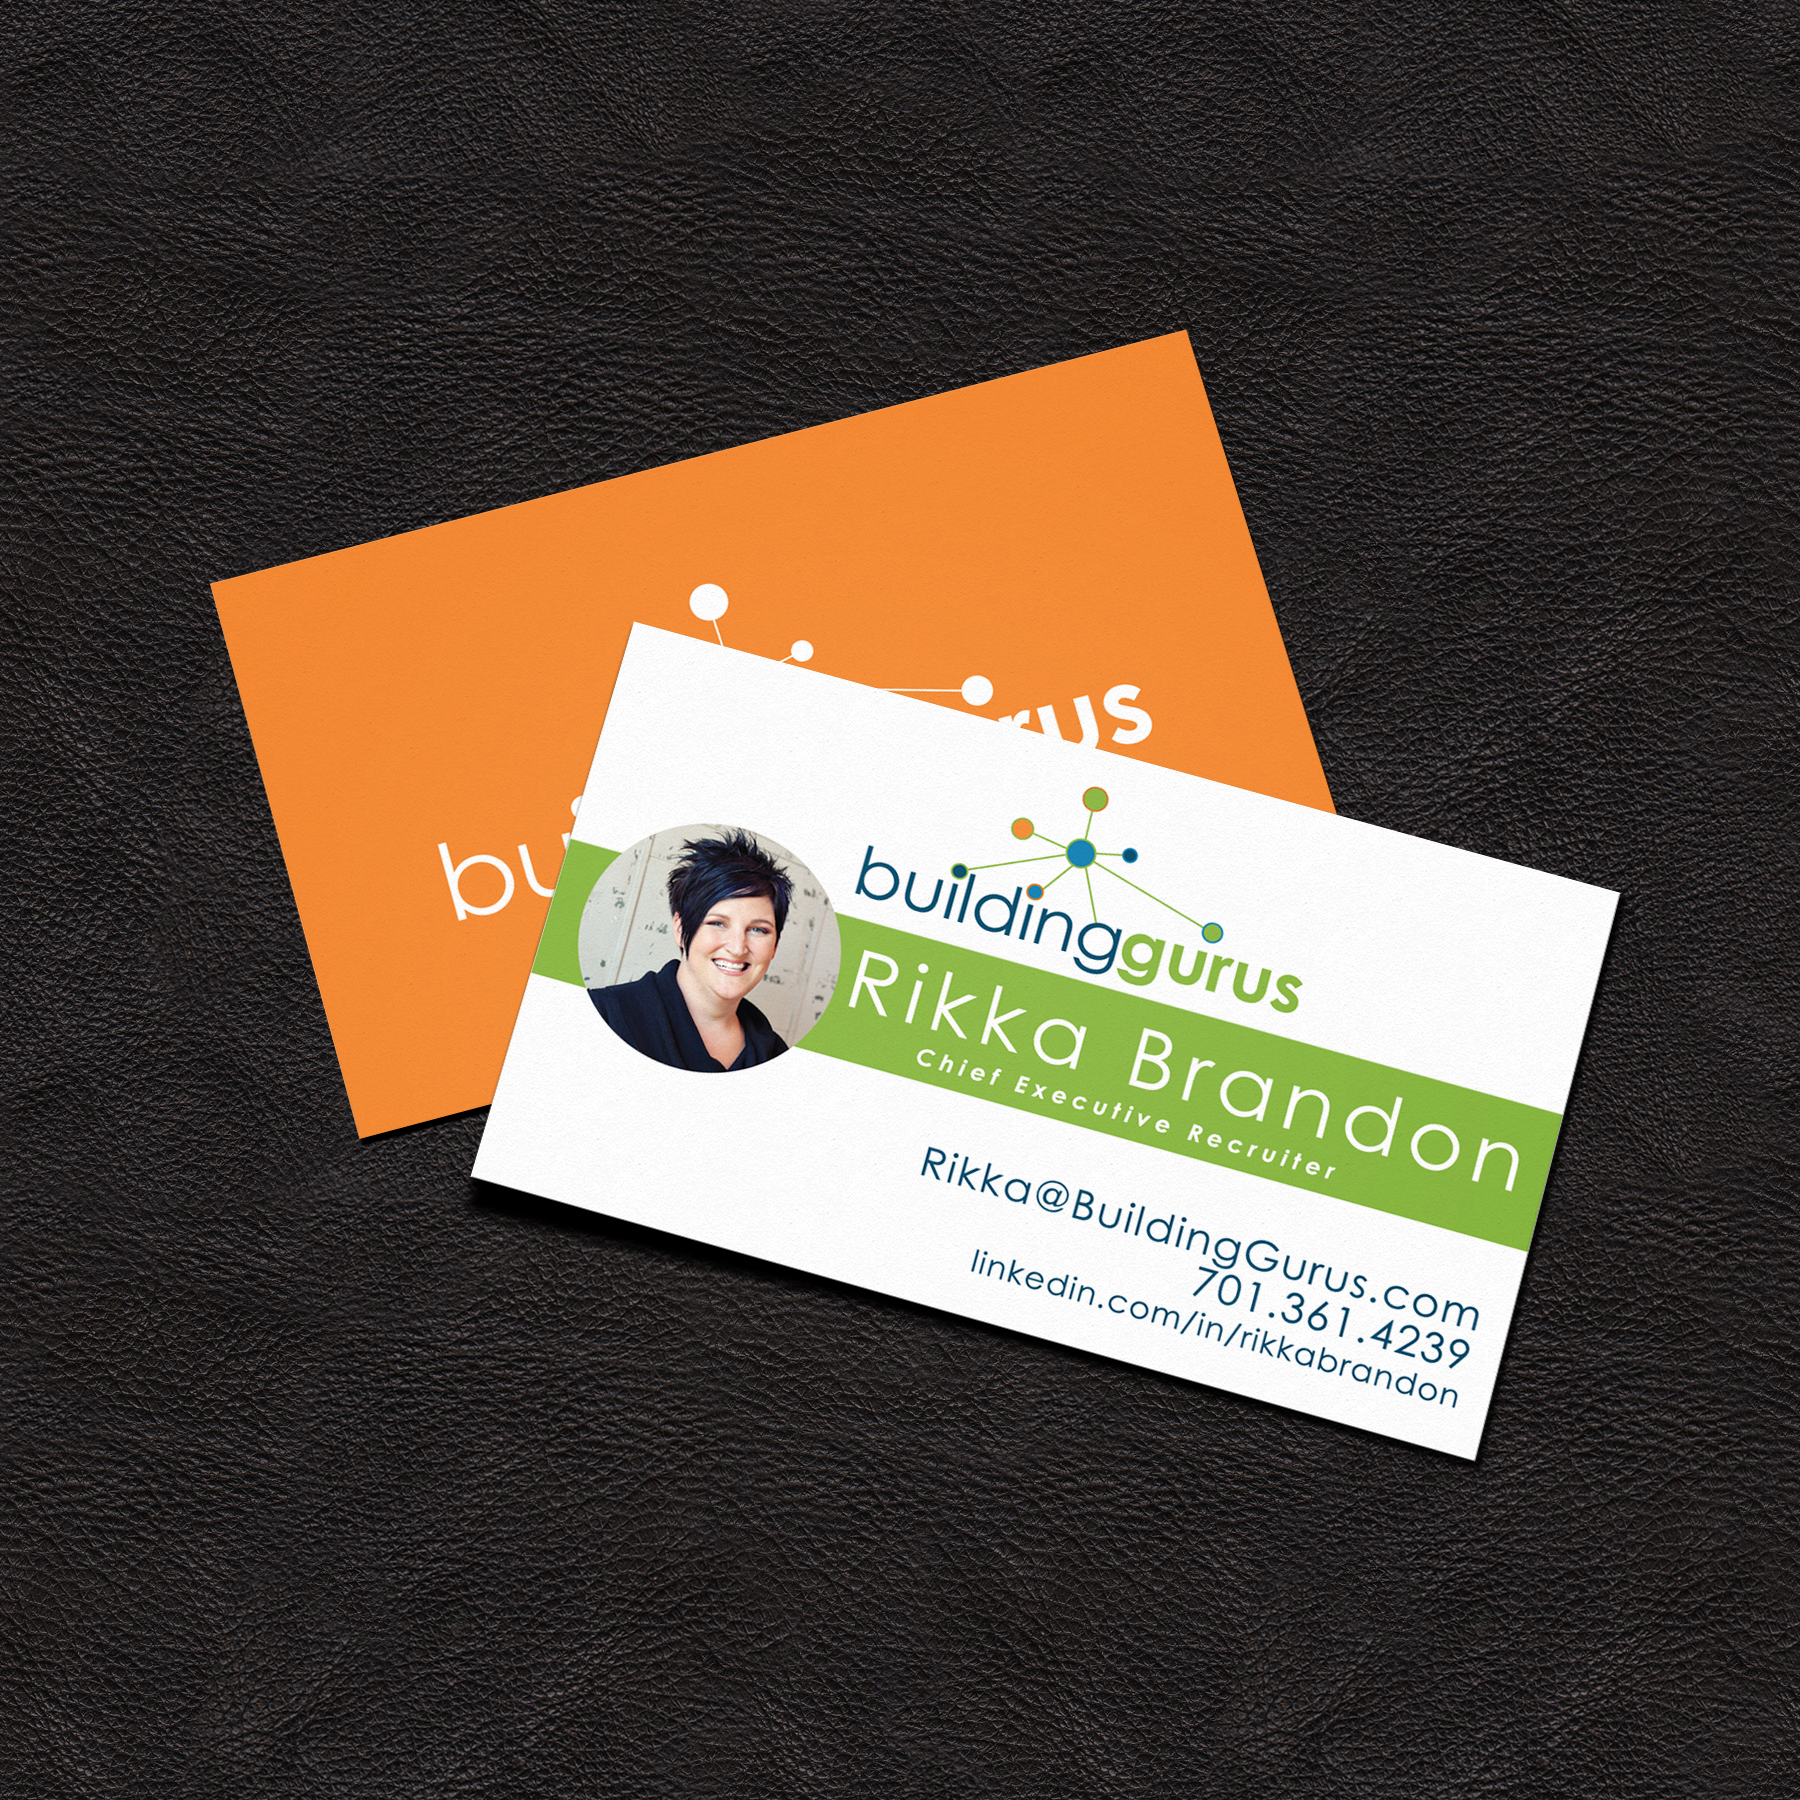 Eye-Catching Graphic Design Assets People Want to Share - Business Cards